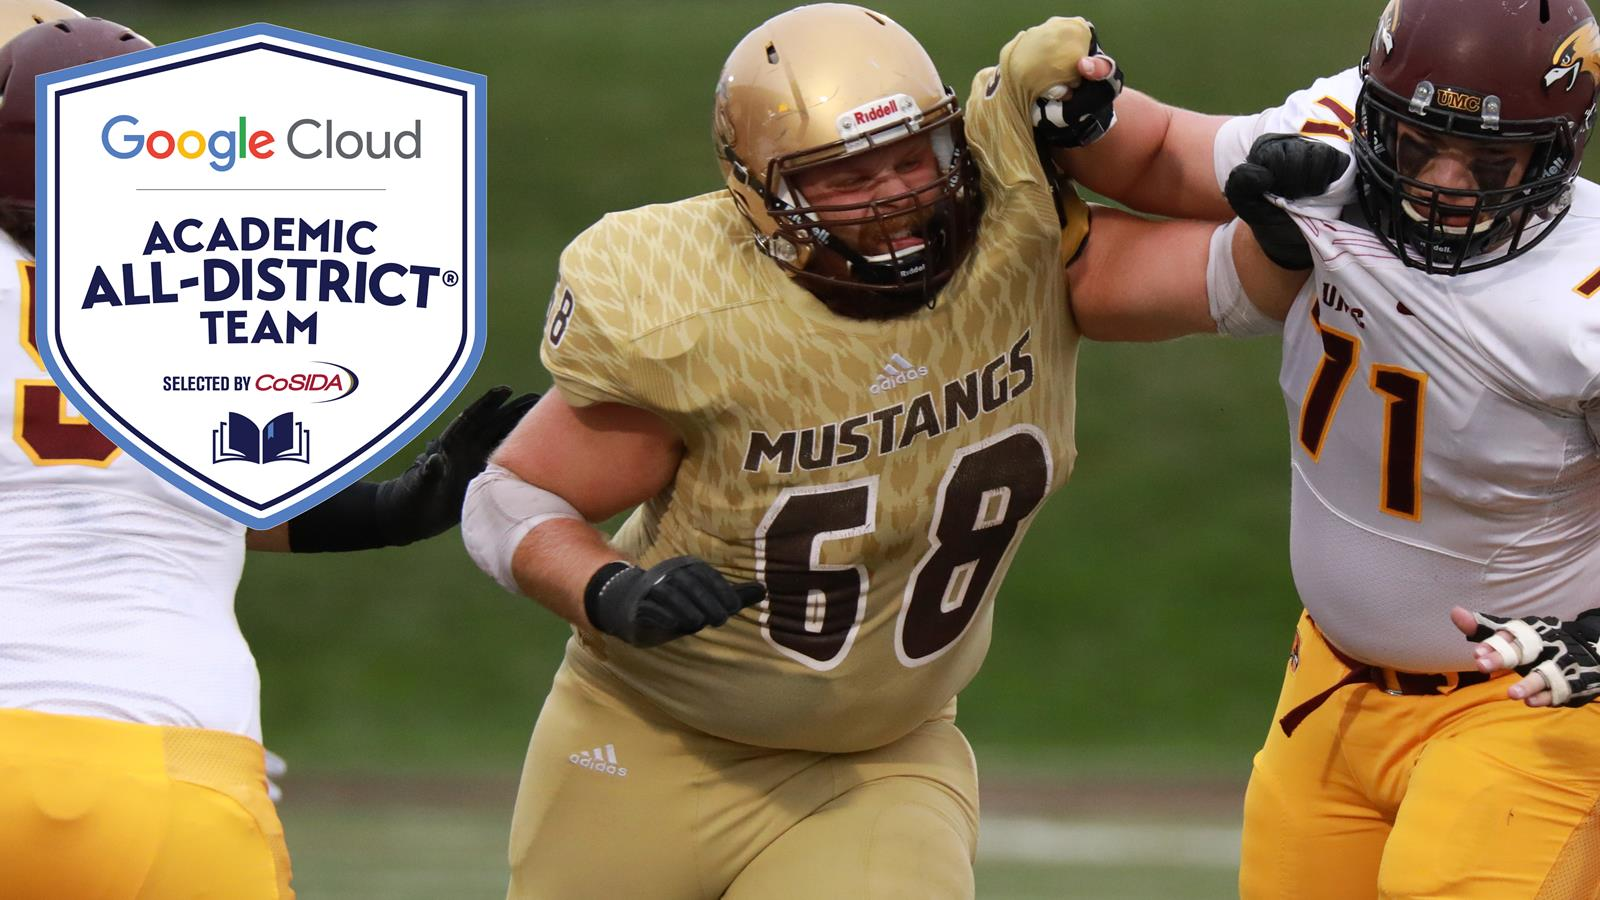 Smsu S Jon Dicke Named Google Cloud Cosida Academic All District